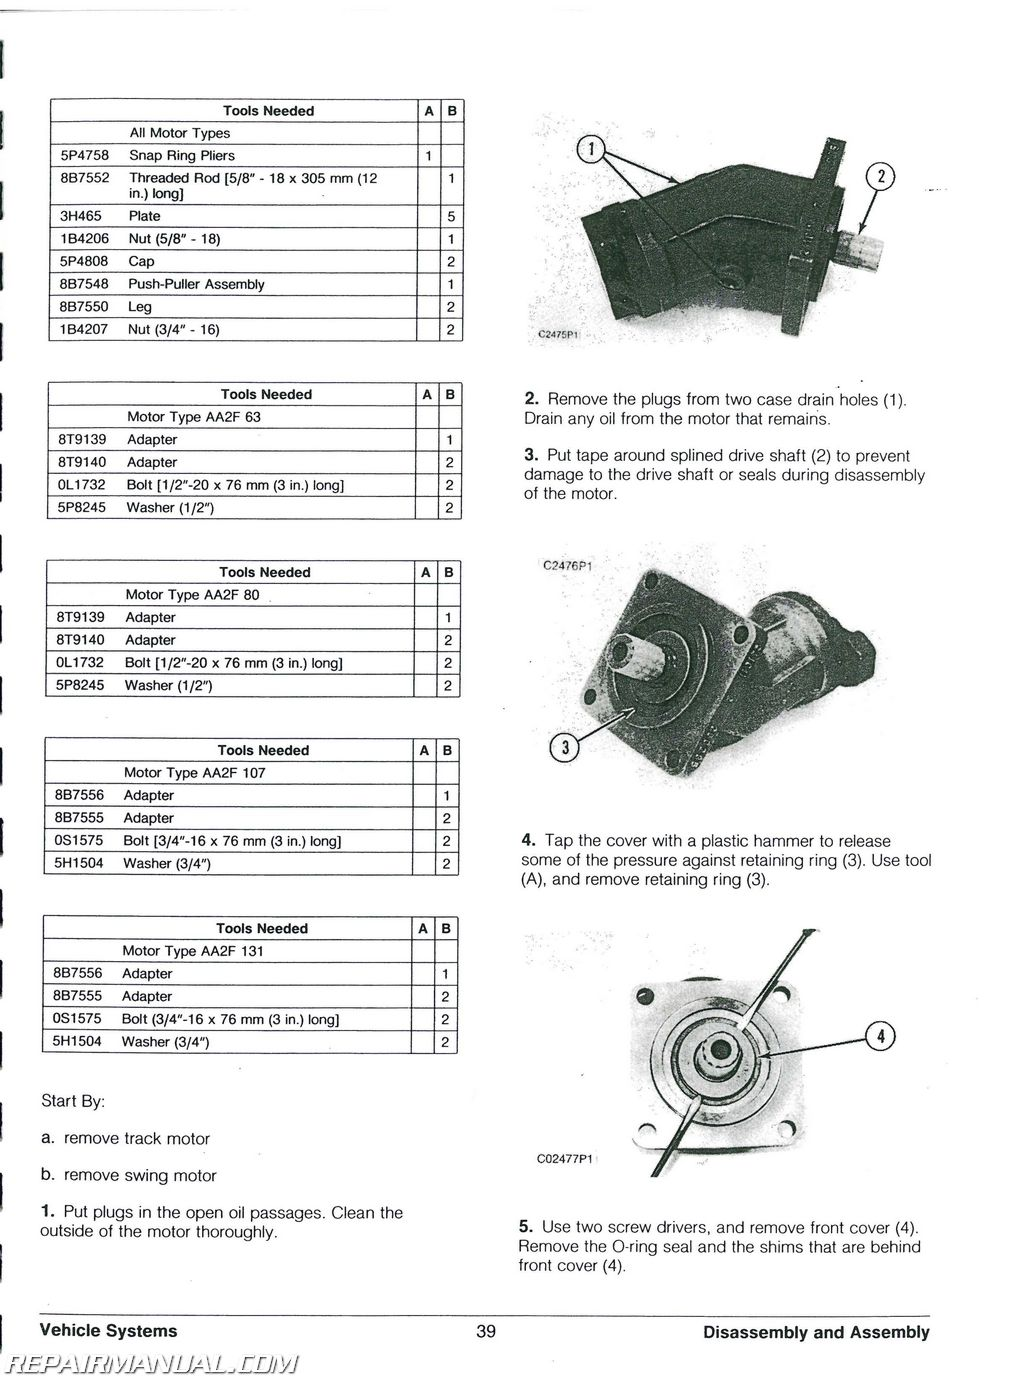 Caterpillar 225B 229 Excavator Service Manual